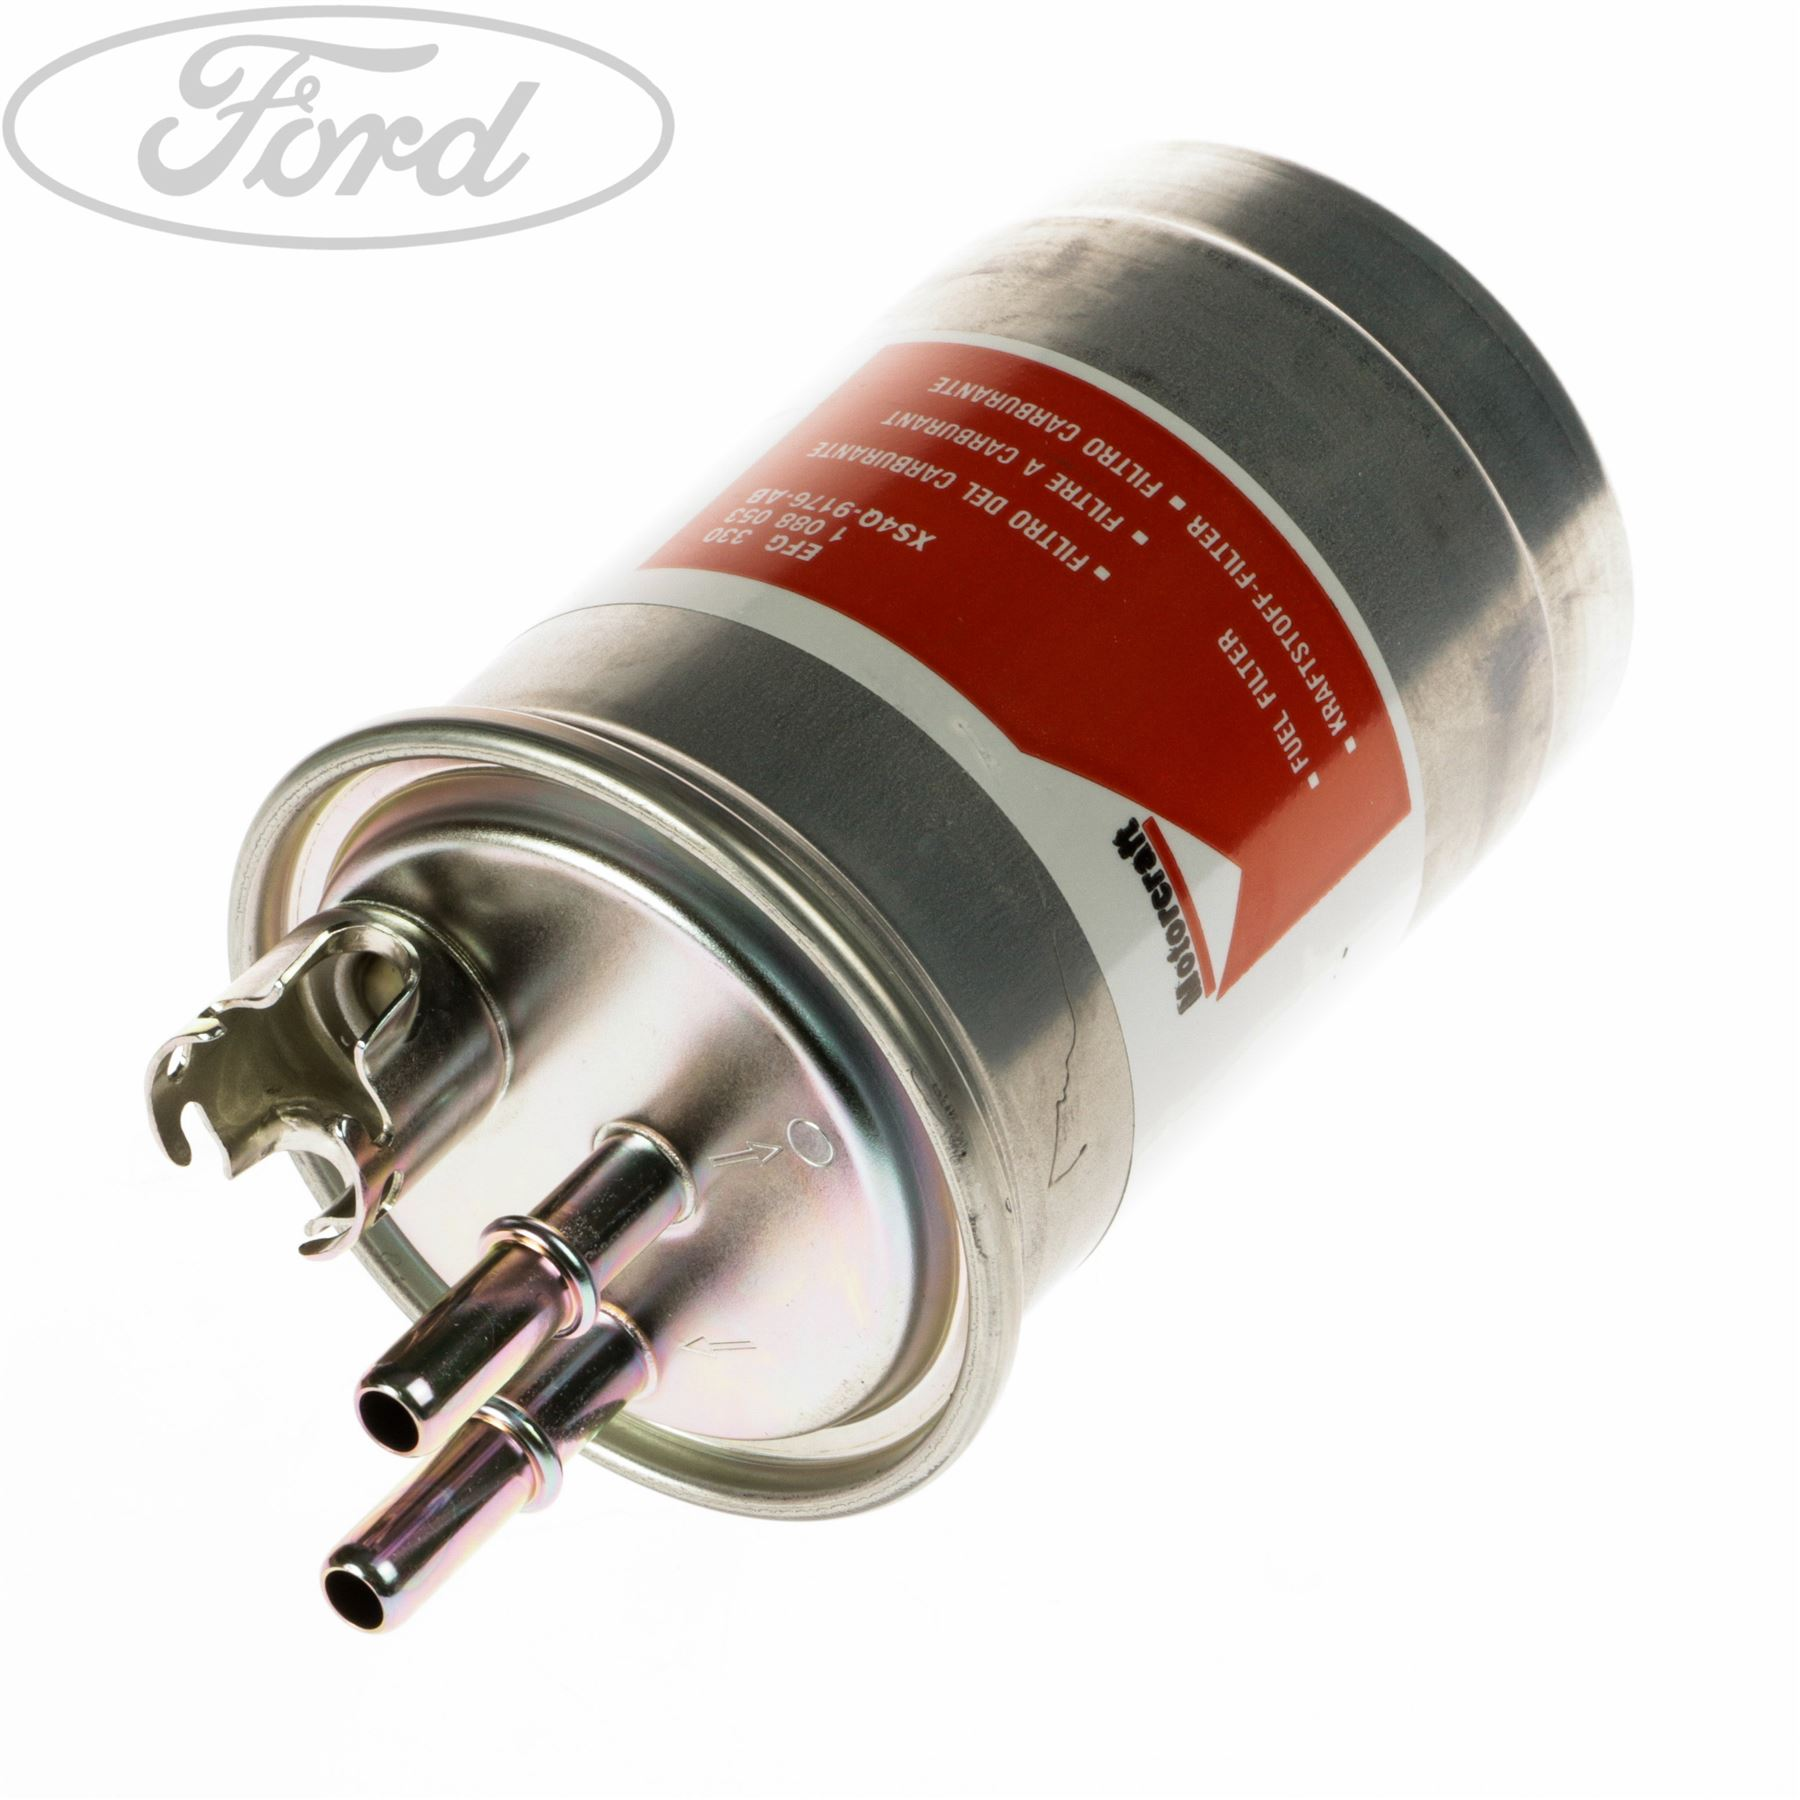 hight resolution of details about genuine ford focus mk1 fiesta mk4 1 8 tdci motorcraft diesel fuel filter 2042989